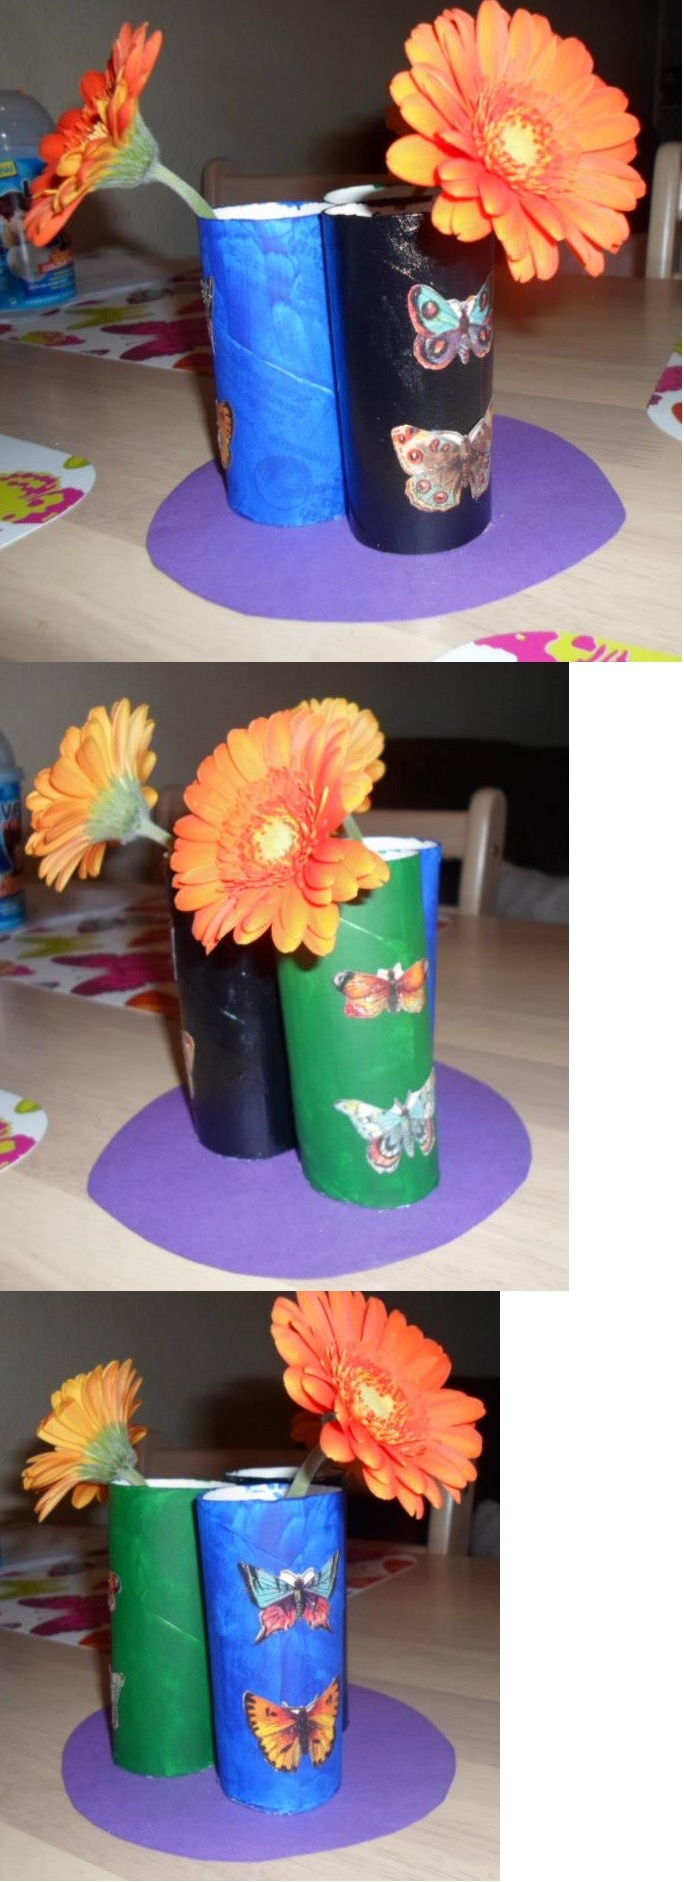 This flower holder is made out of toiletpaper rolls.